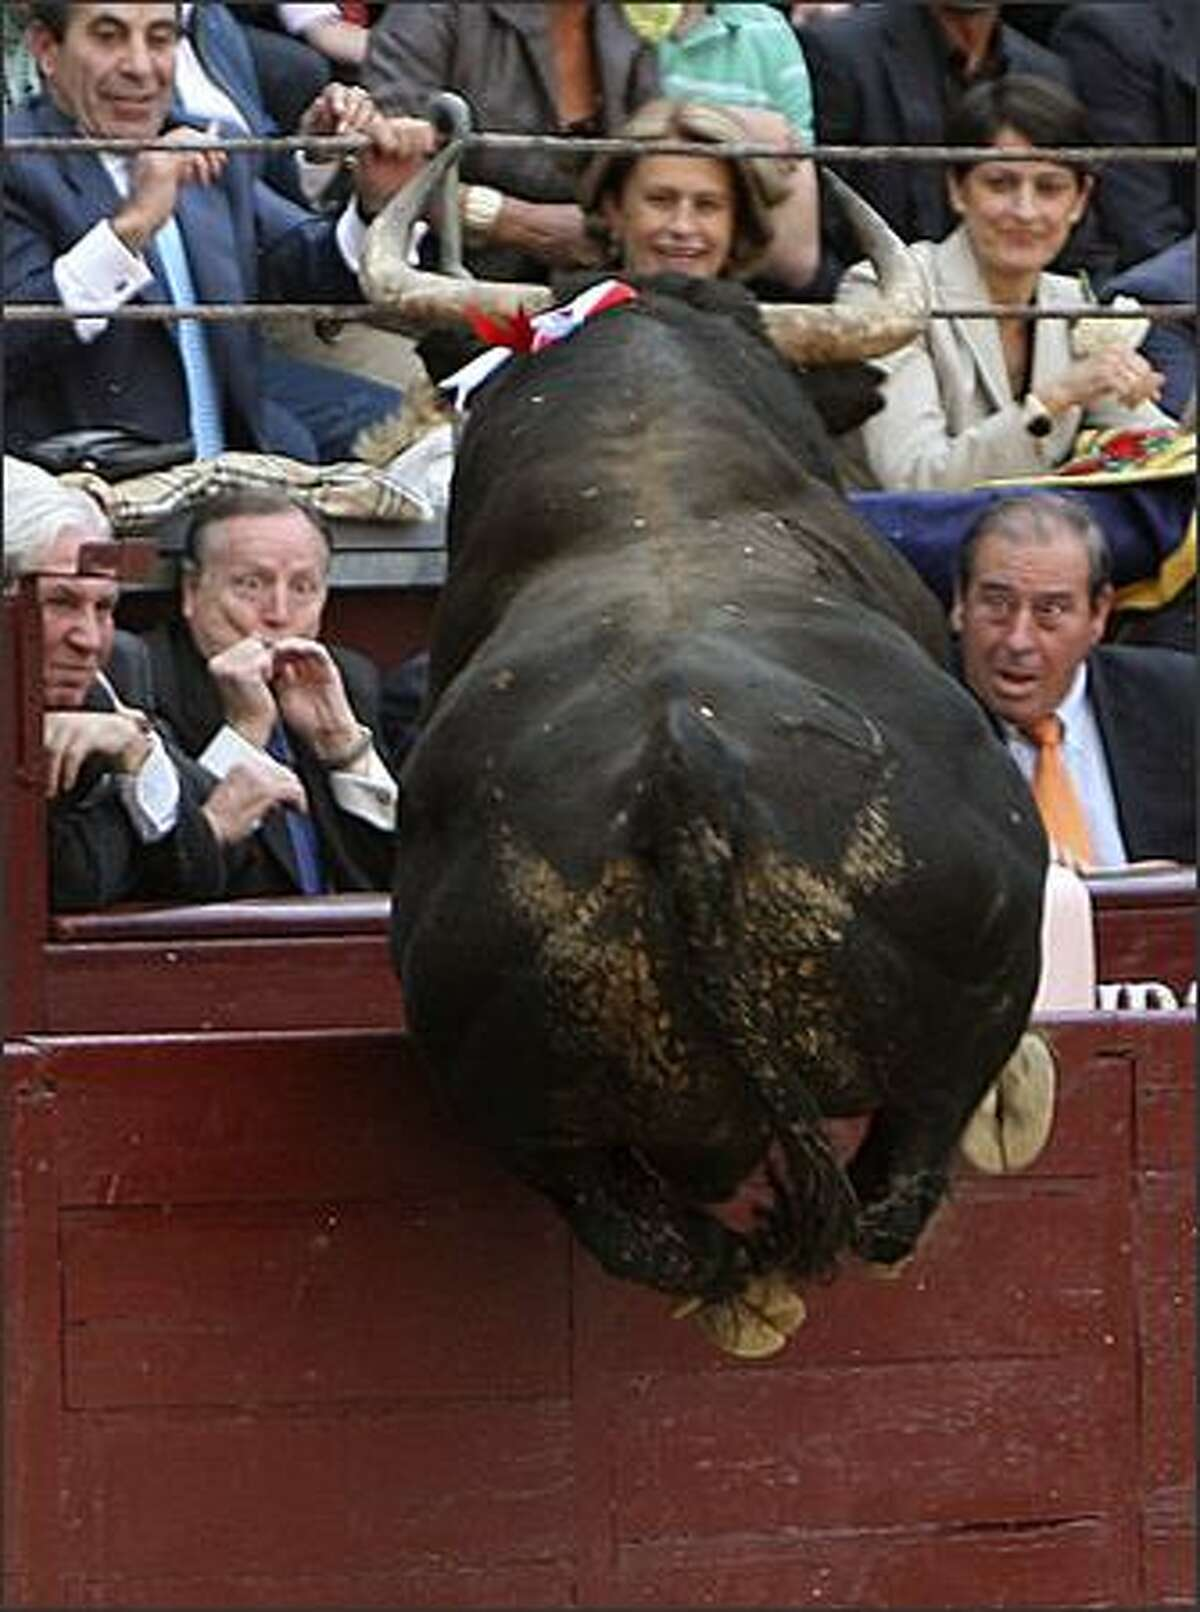 Former Mayor of Madrid Alvarez del Manzano, first row, second left, shows his emotions as a bull jumps over the barrier during a San Isidro bullfight in Madrid. (AP Photo/EFE, J.J. Guillen)